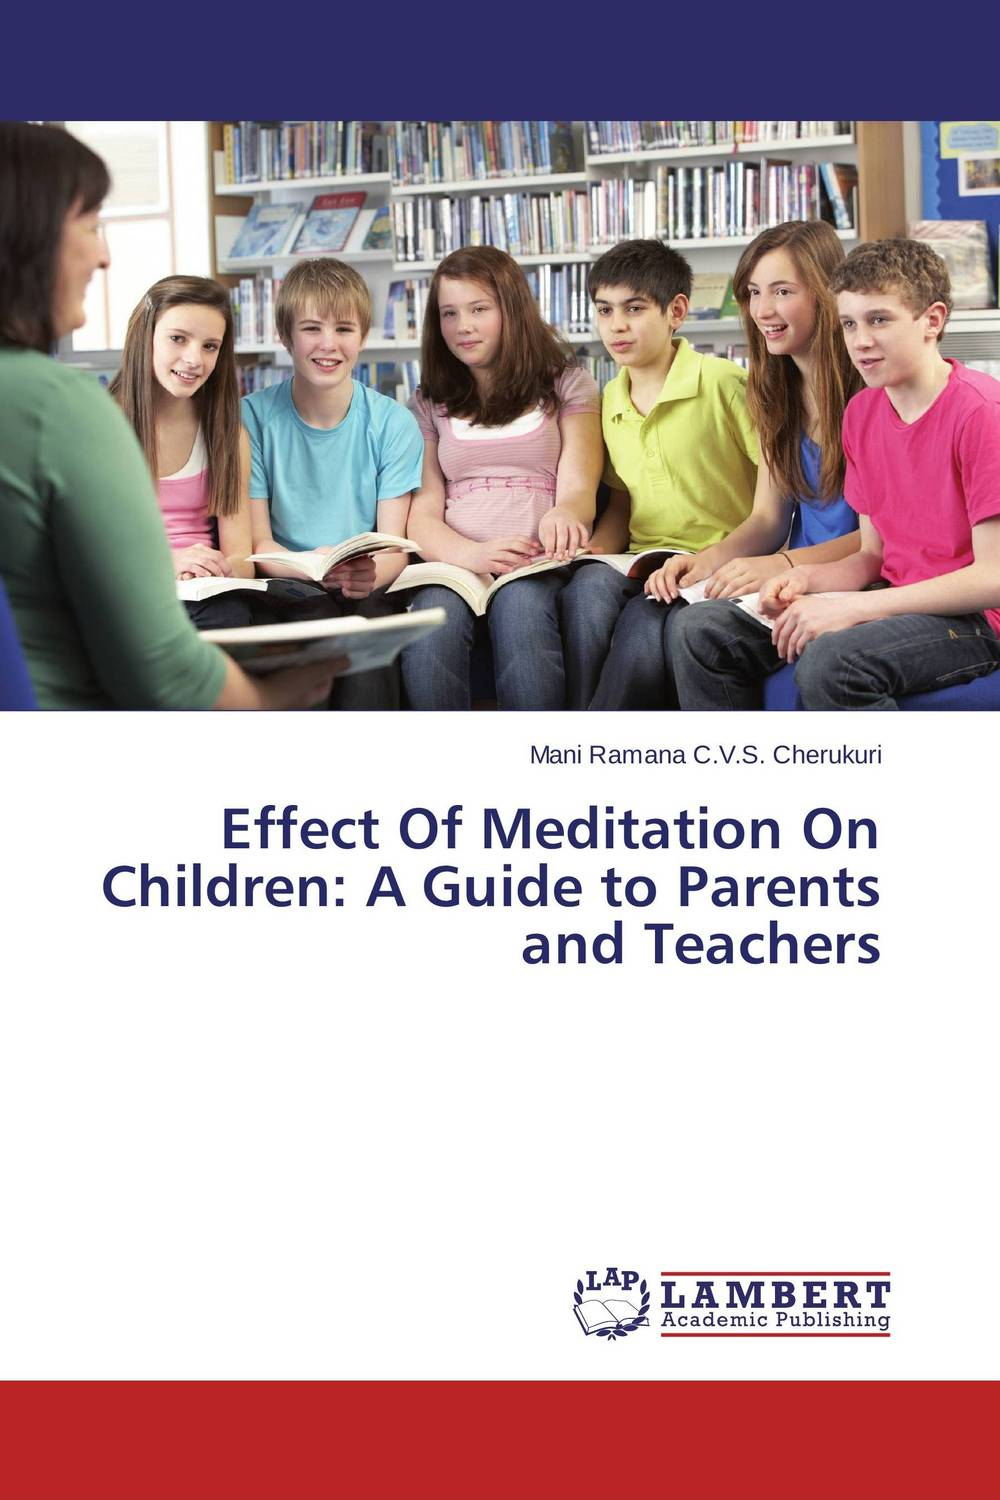 Effect Of Meditation On Children: A Guide to Parents and Teachers